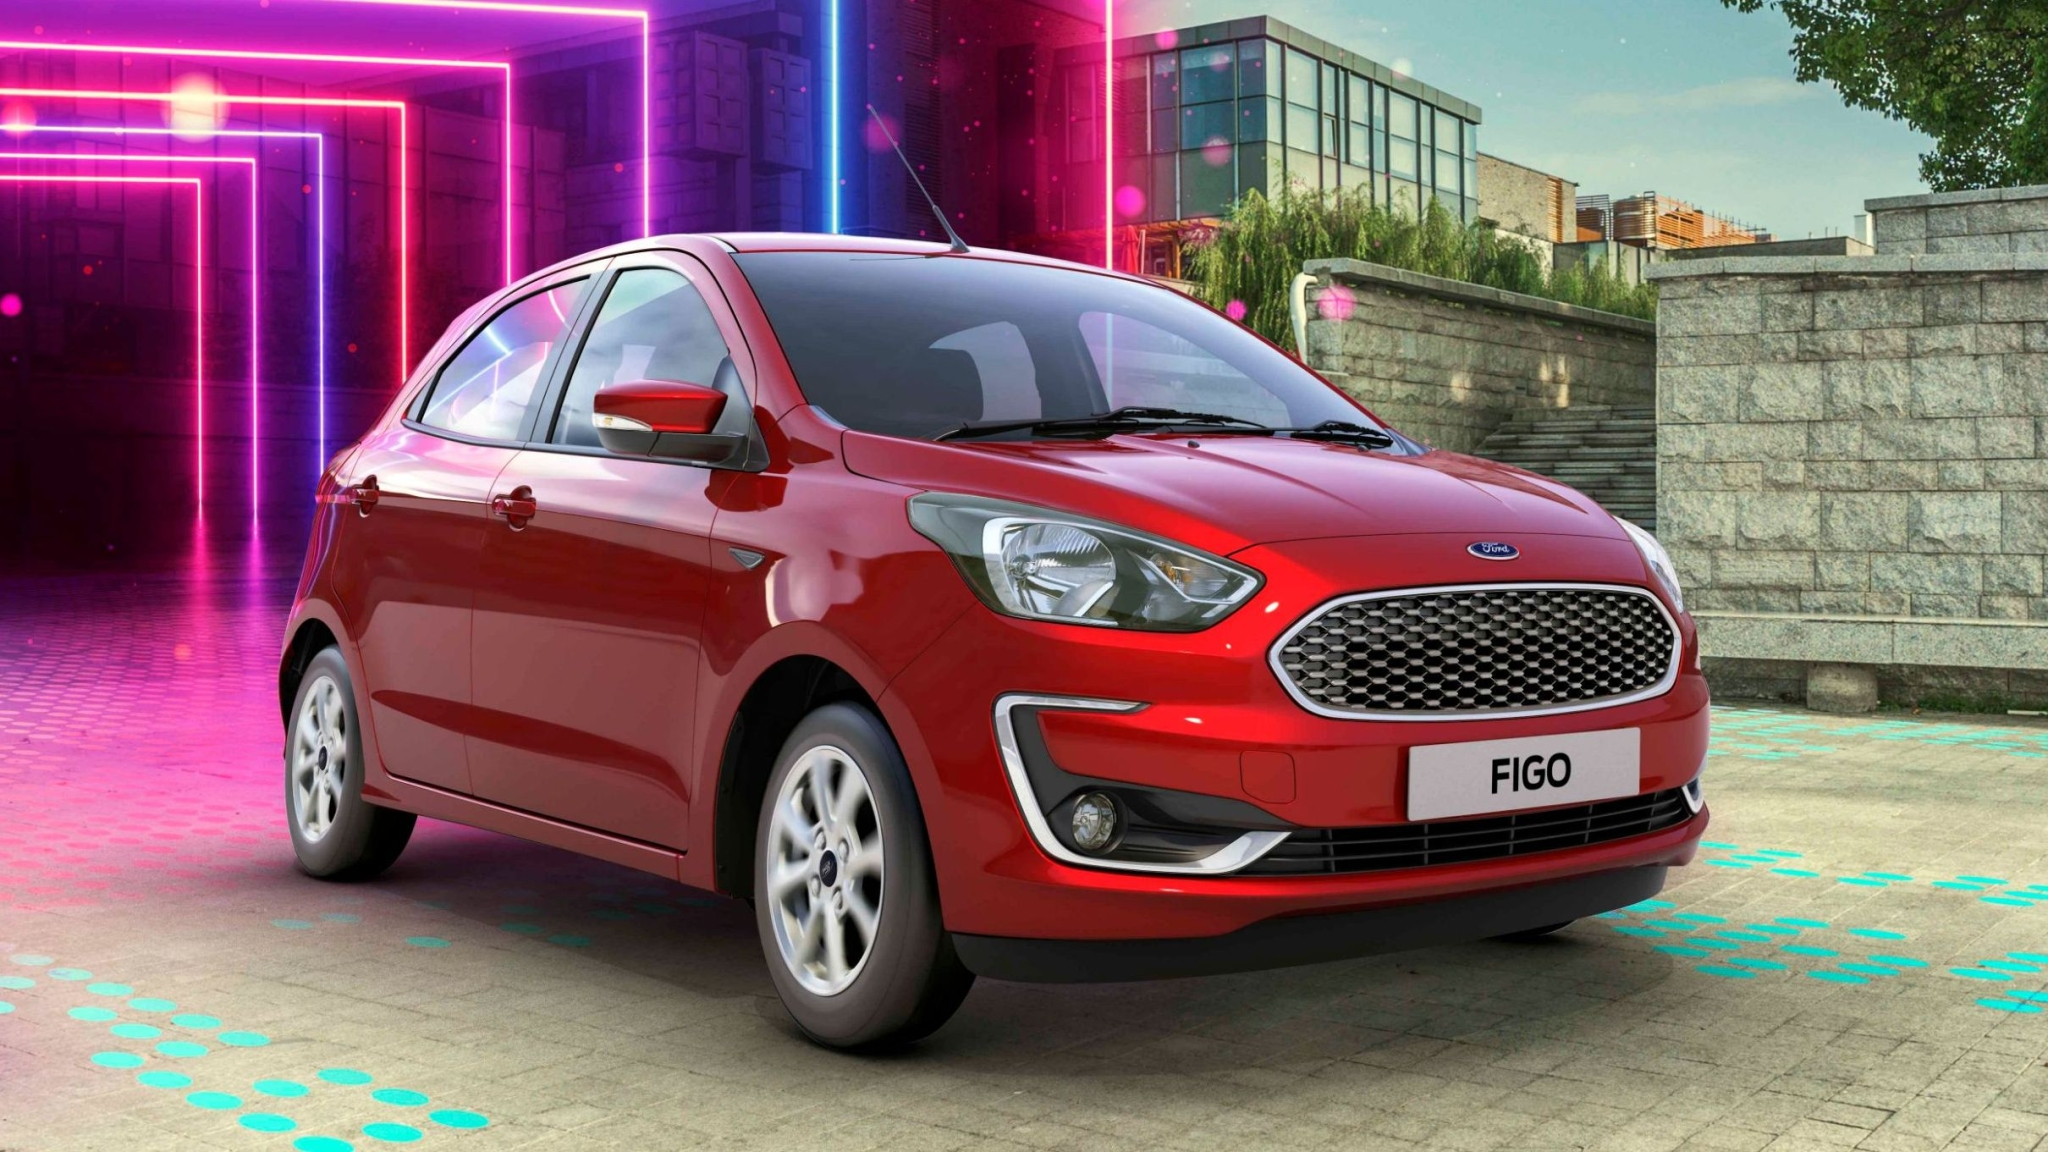 New 2019 Ford Figo Launch on 15 March, Comes in Seven Variants